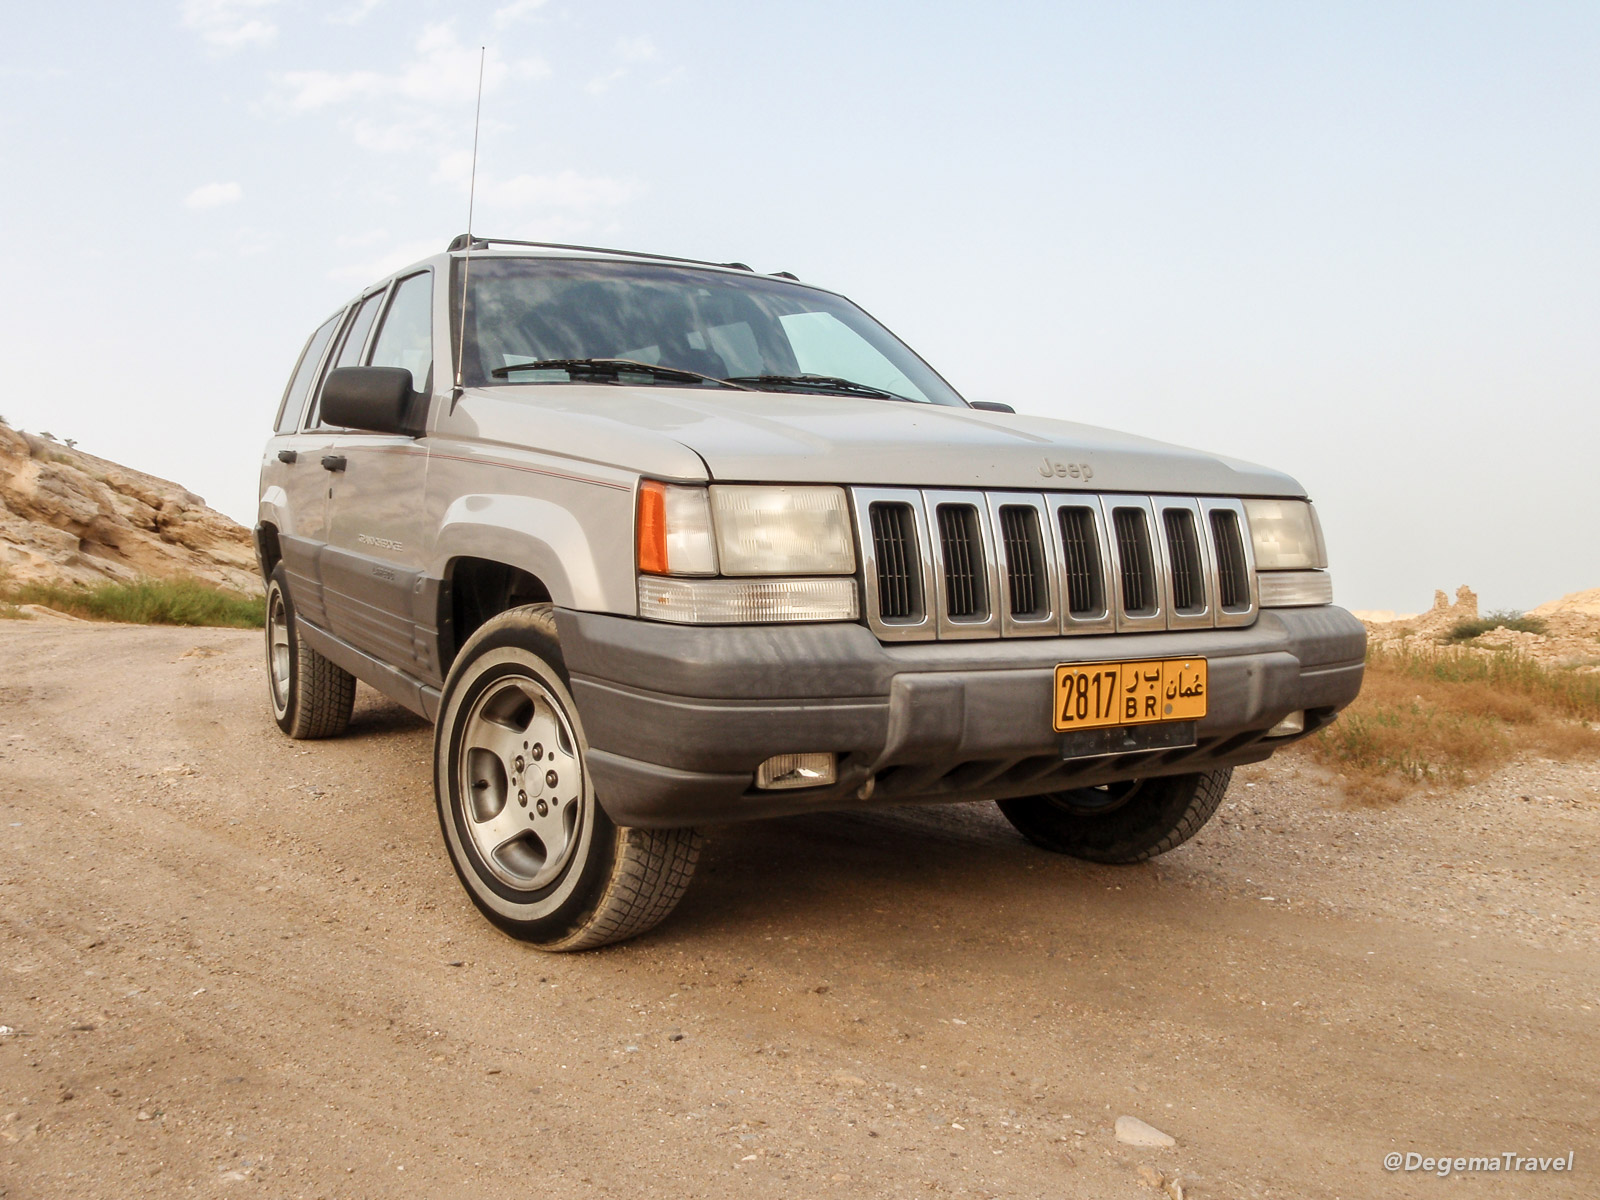 1997 Jeep Grand Cherokee Laredo in Muscat, Oman